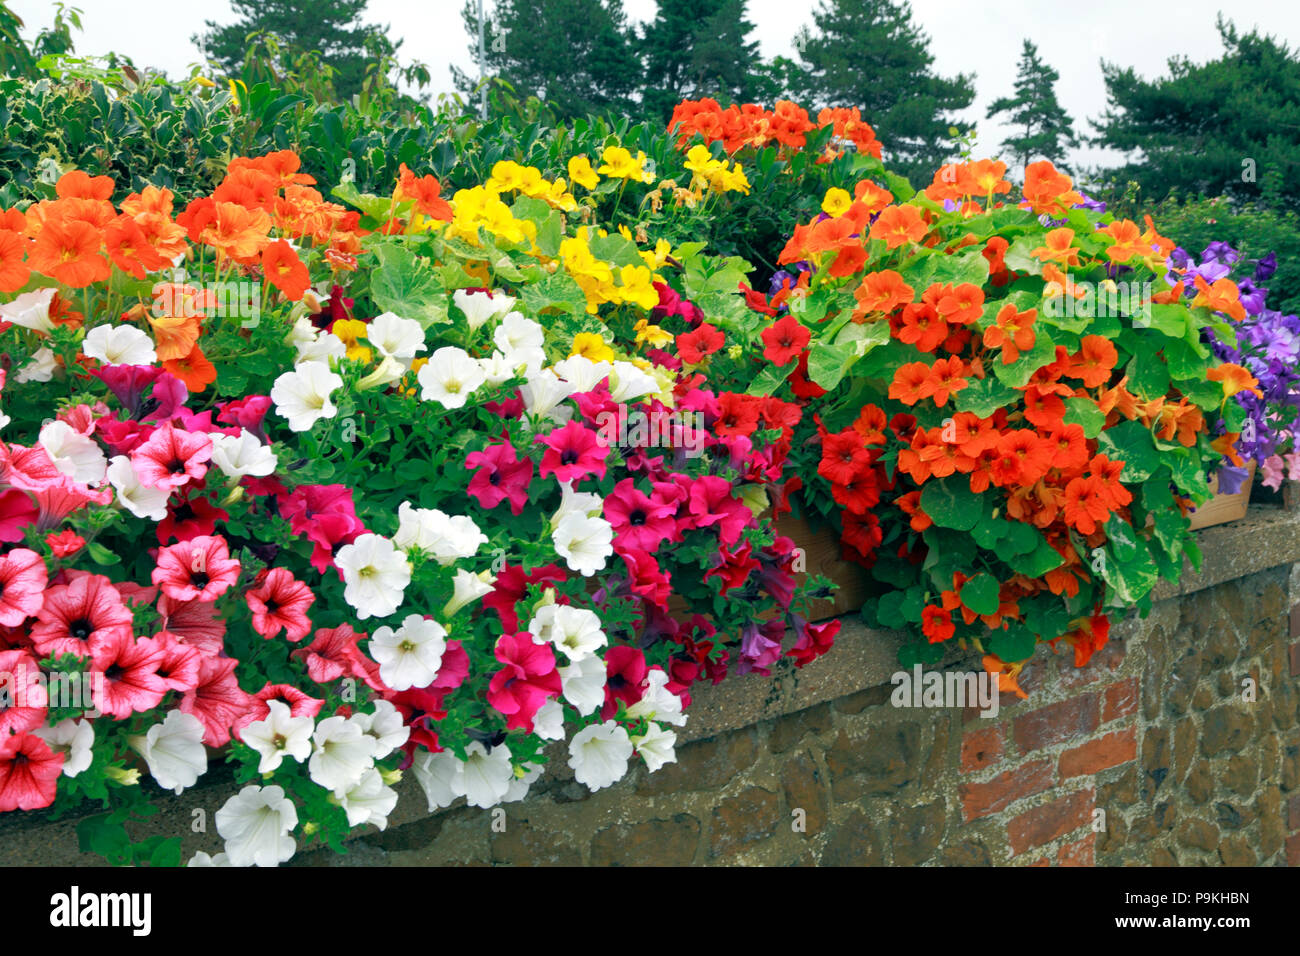 Garden Wall, Pétunias, bleu, orange, rose, blanc, jaune Photo Stock